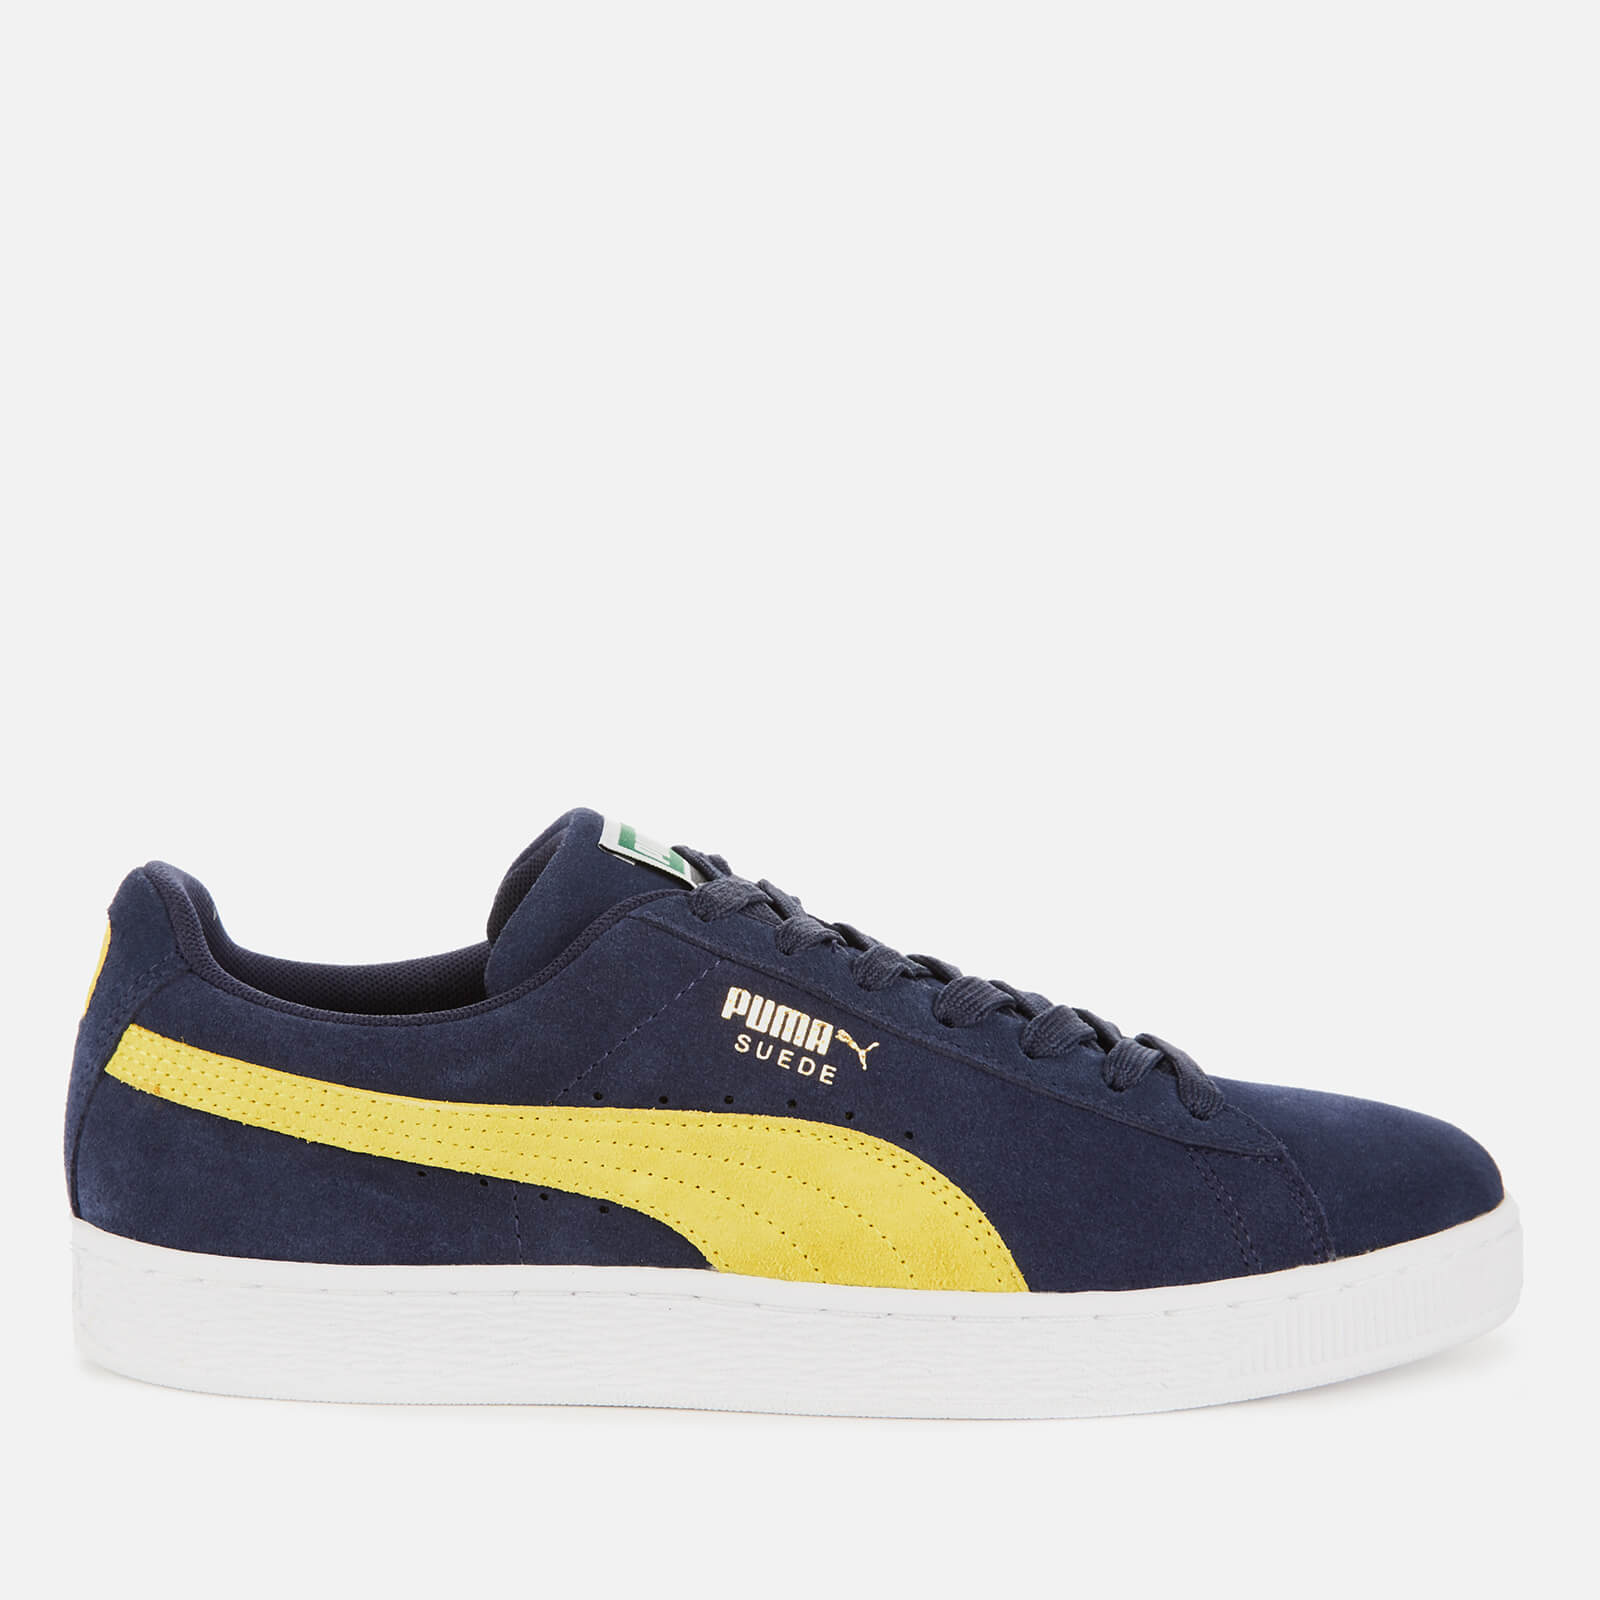 dfb08069f Puma Men's Suede Classic Trainers - Peacoat/Blazing Yellow | FREE UK  Delivery | Allsole